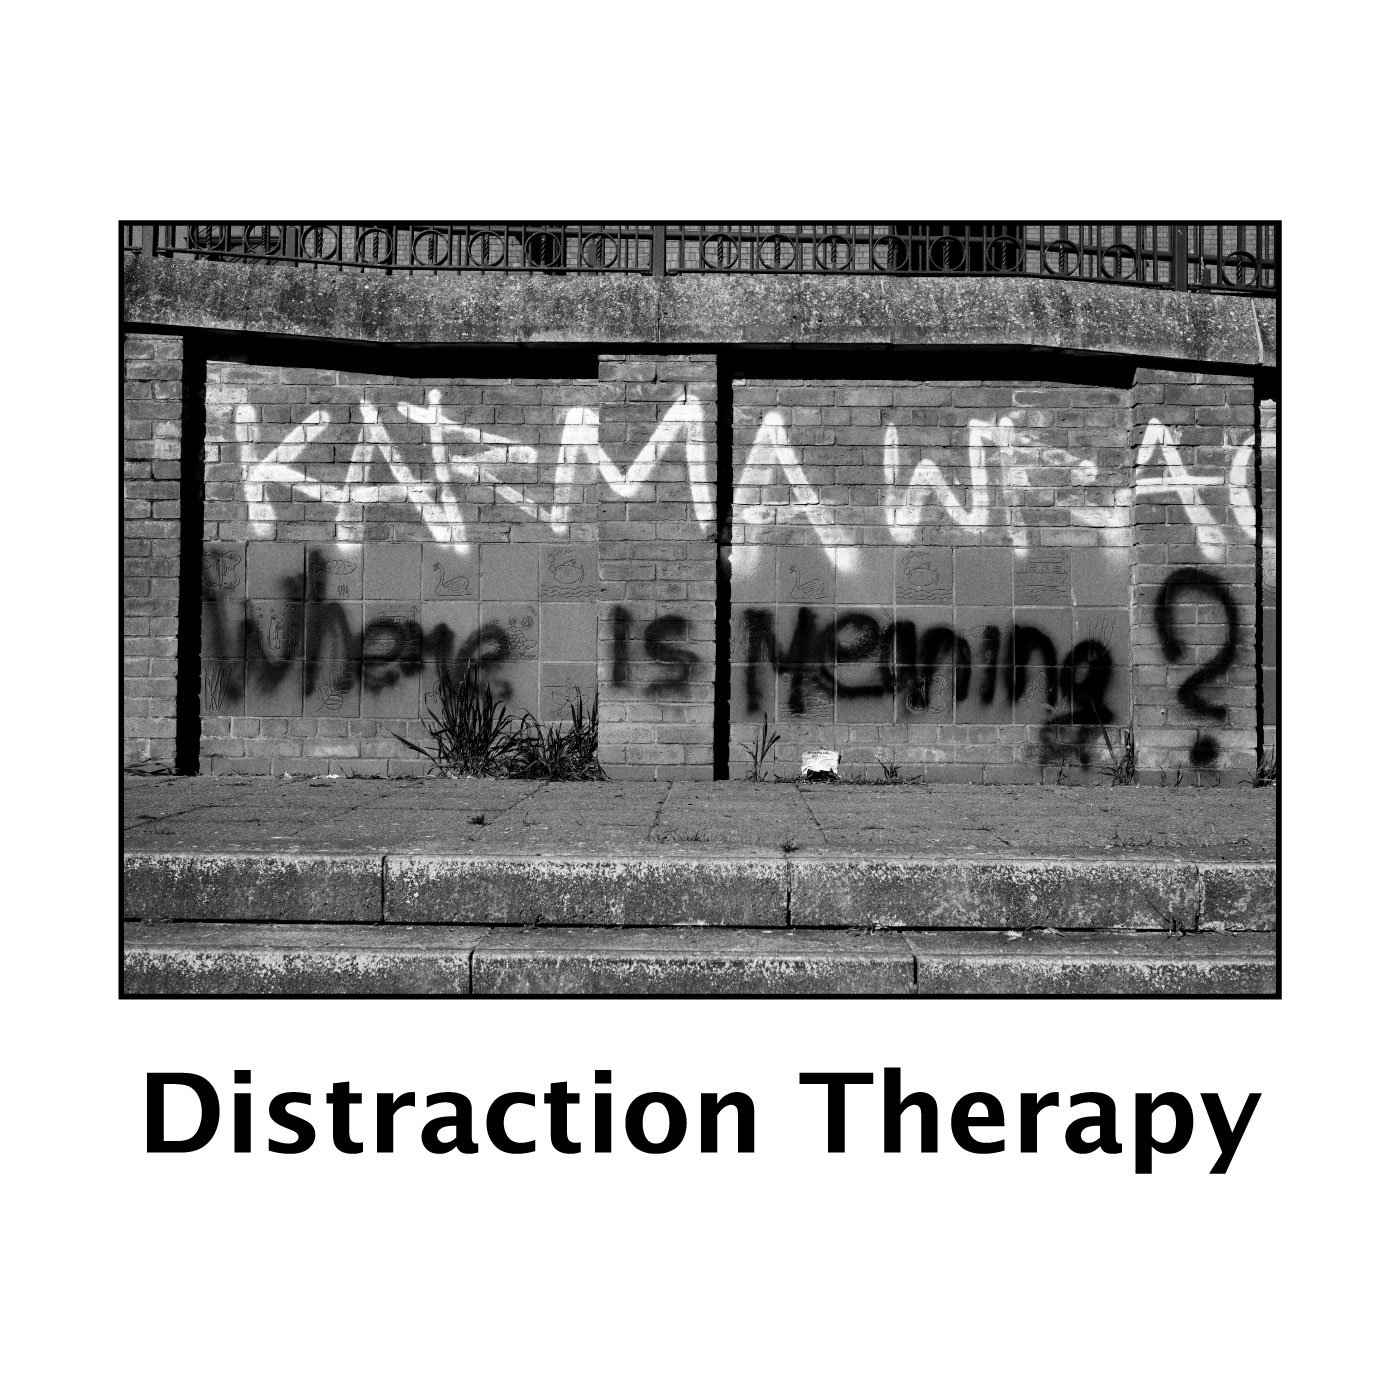 Distraction Therapy